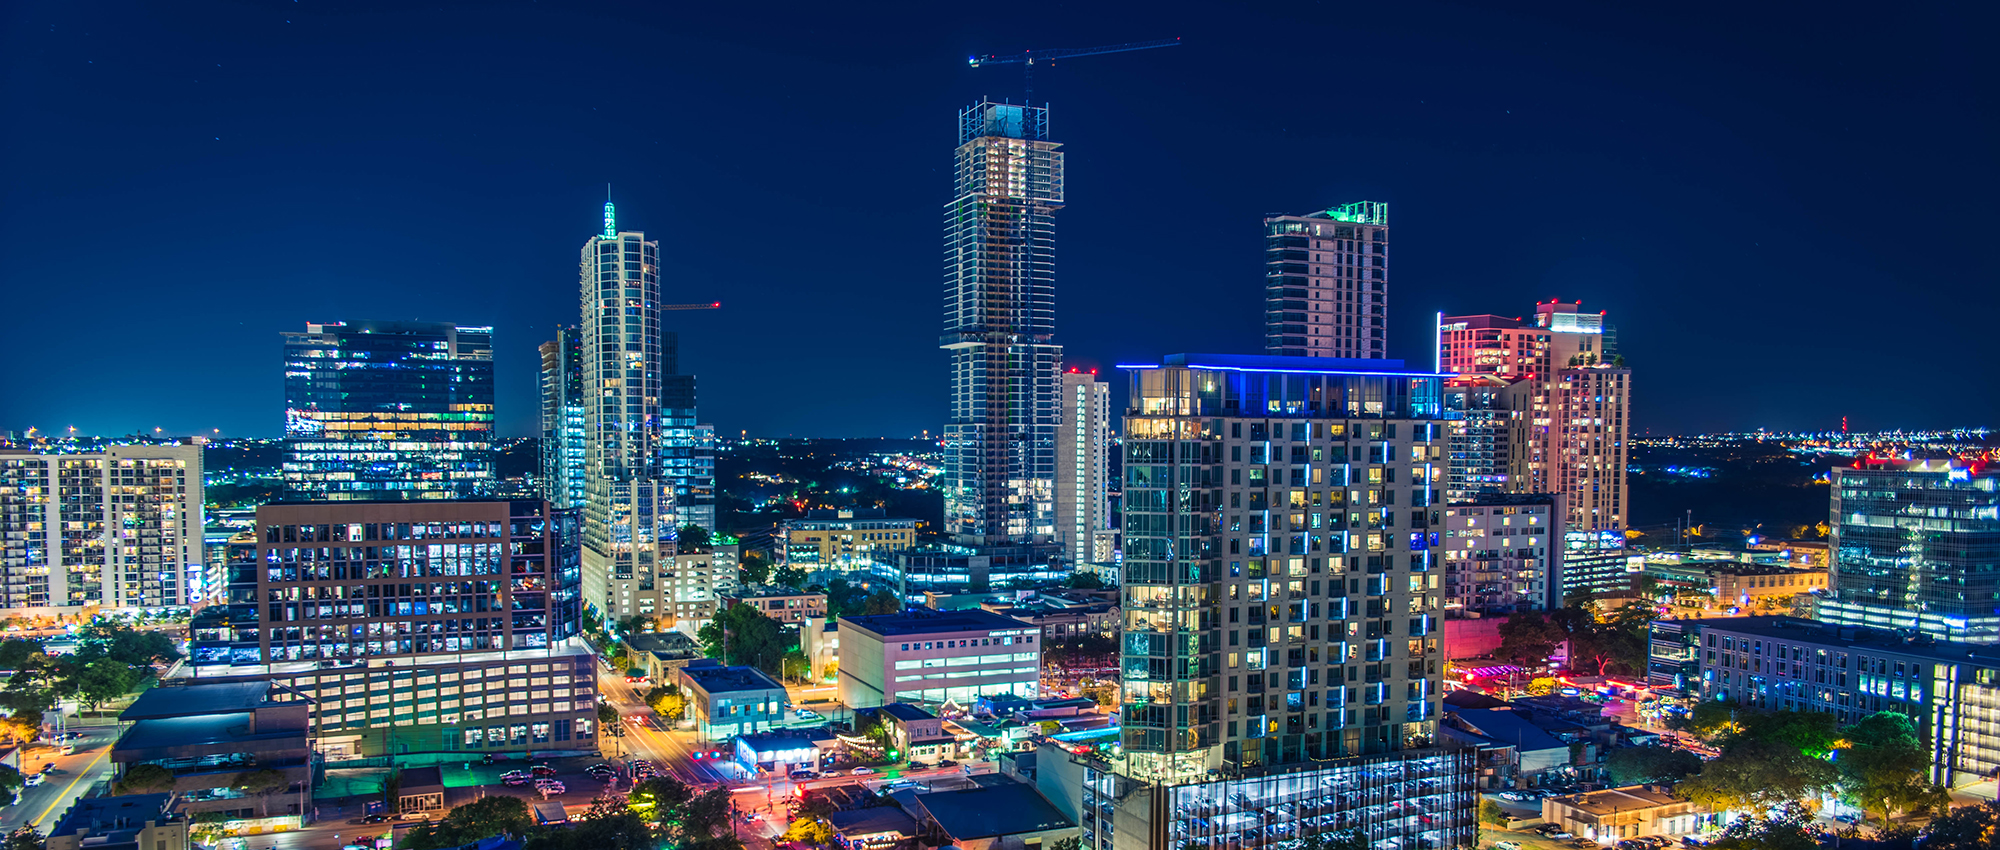 Austin's skyline at night. Shot from the balcony of a hotel downtown